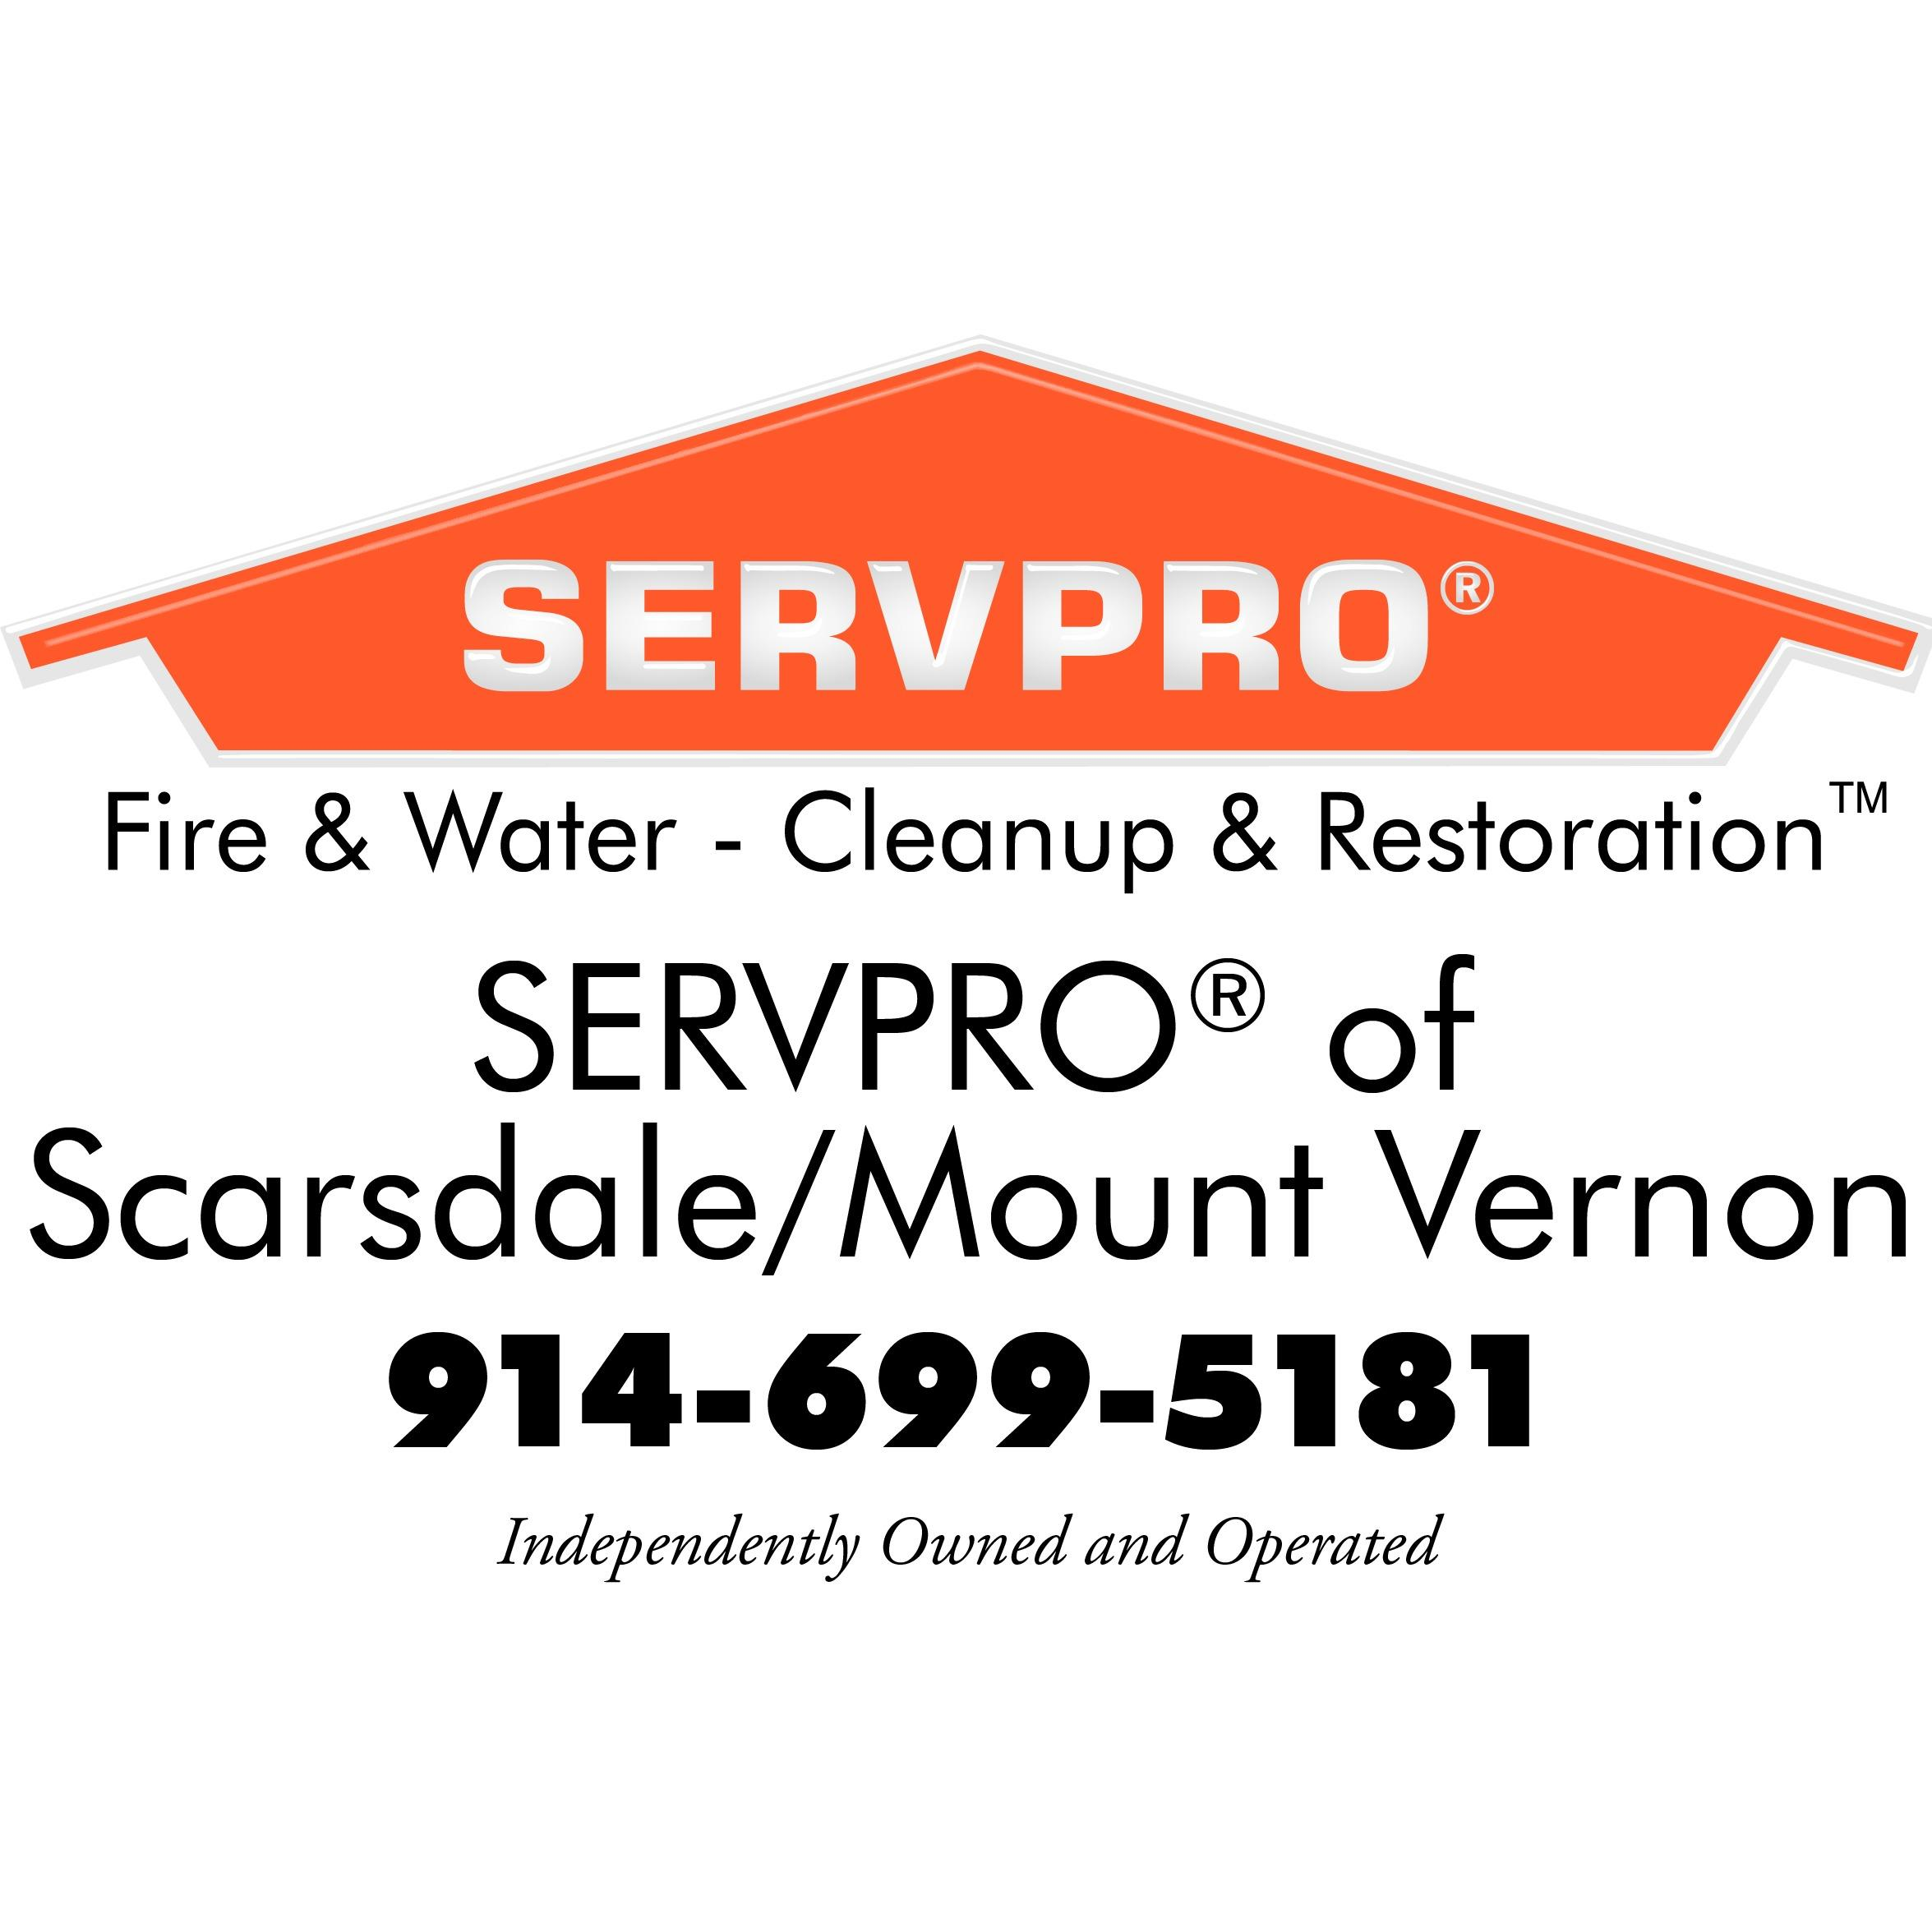 SERVPRO of Scarsdale / Mount Vernon